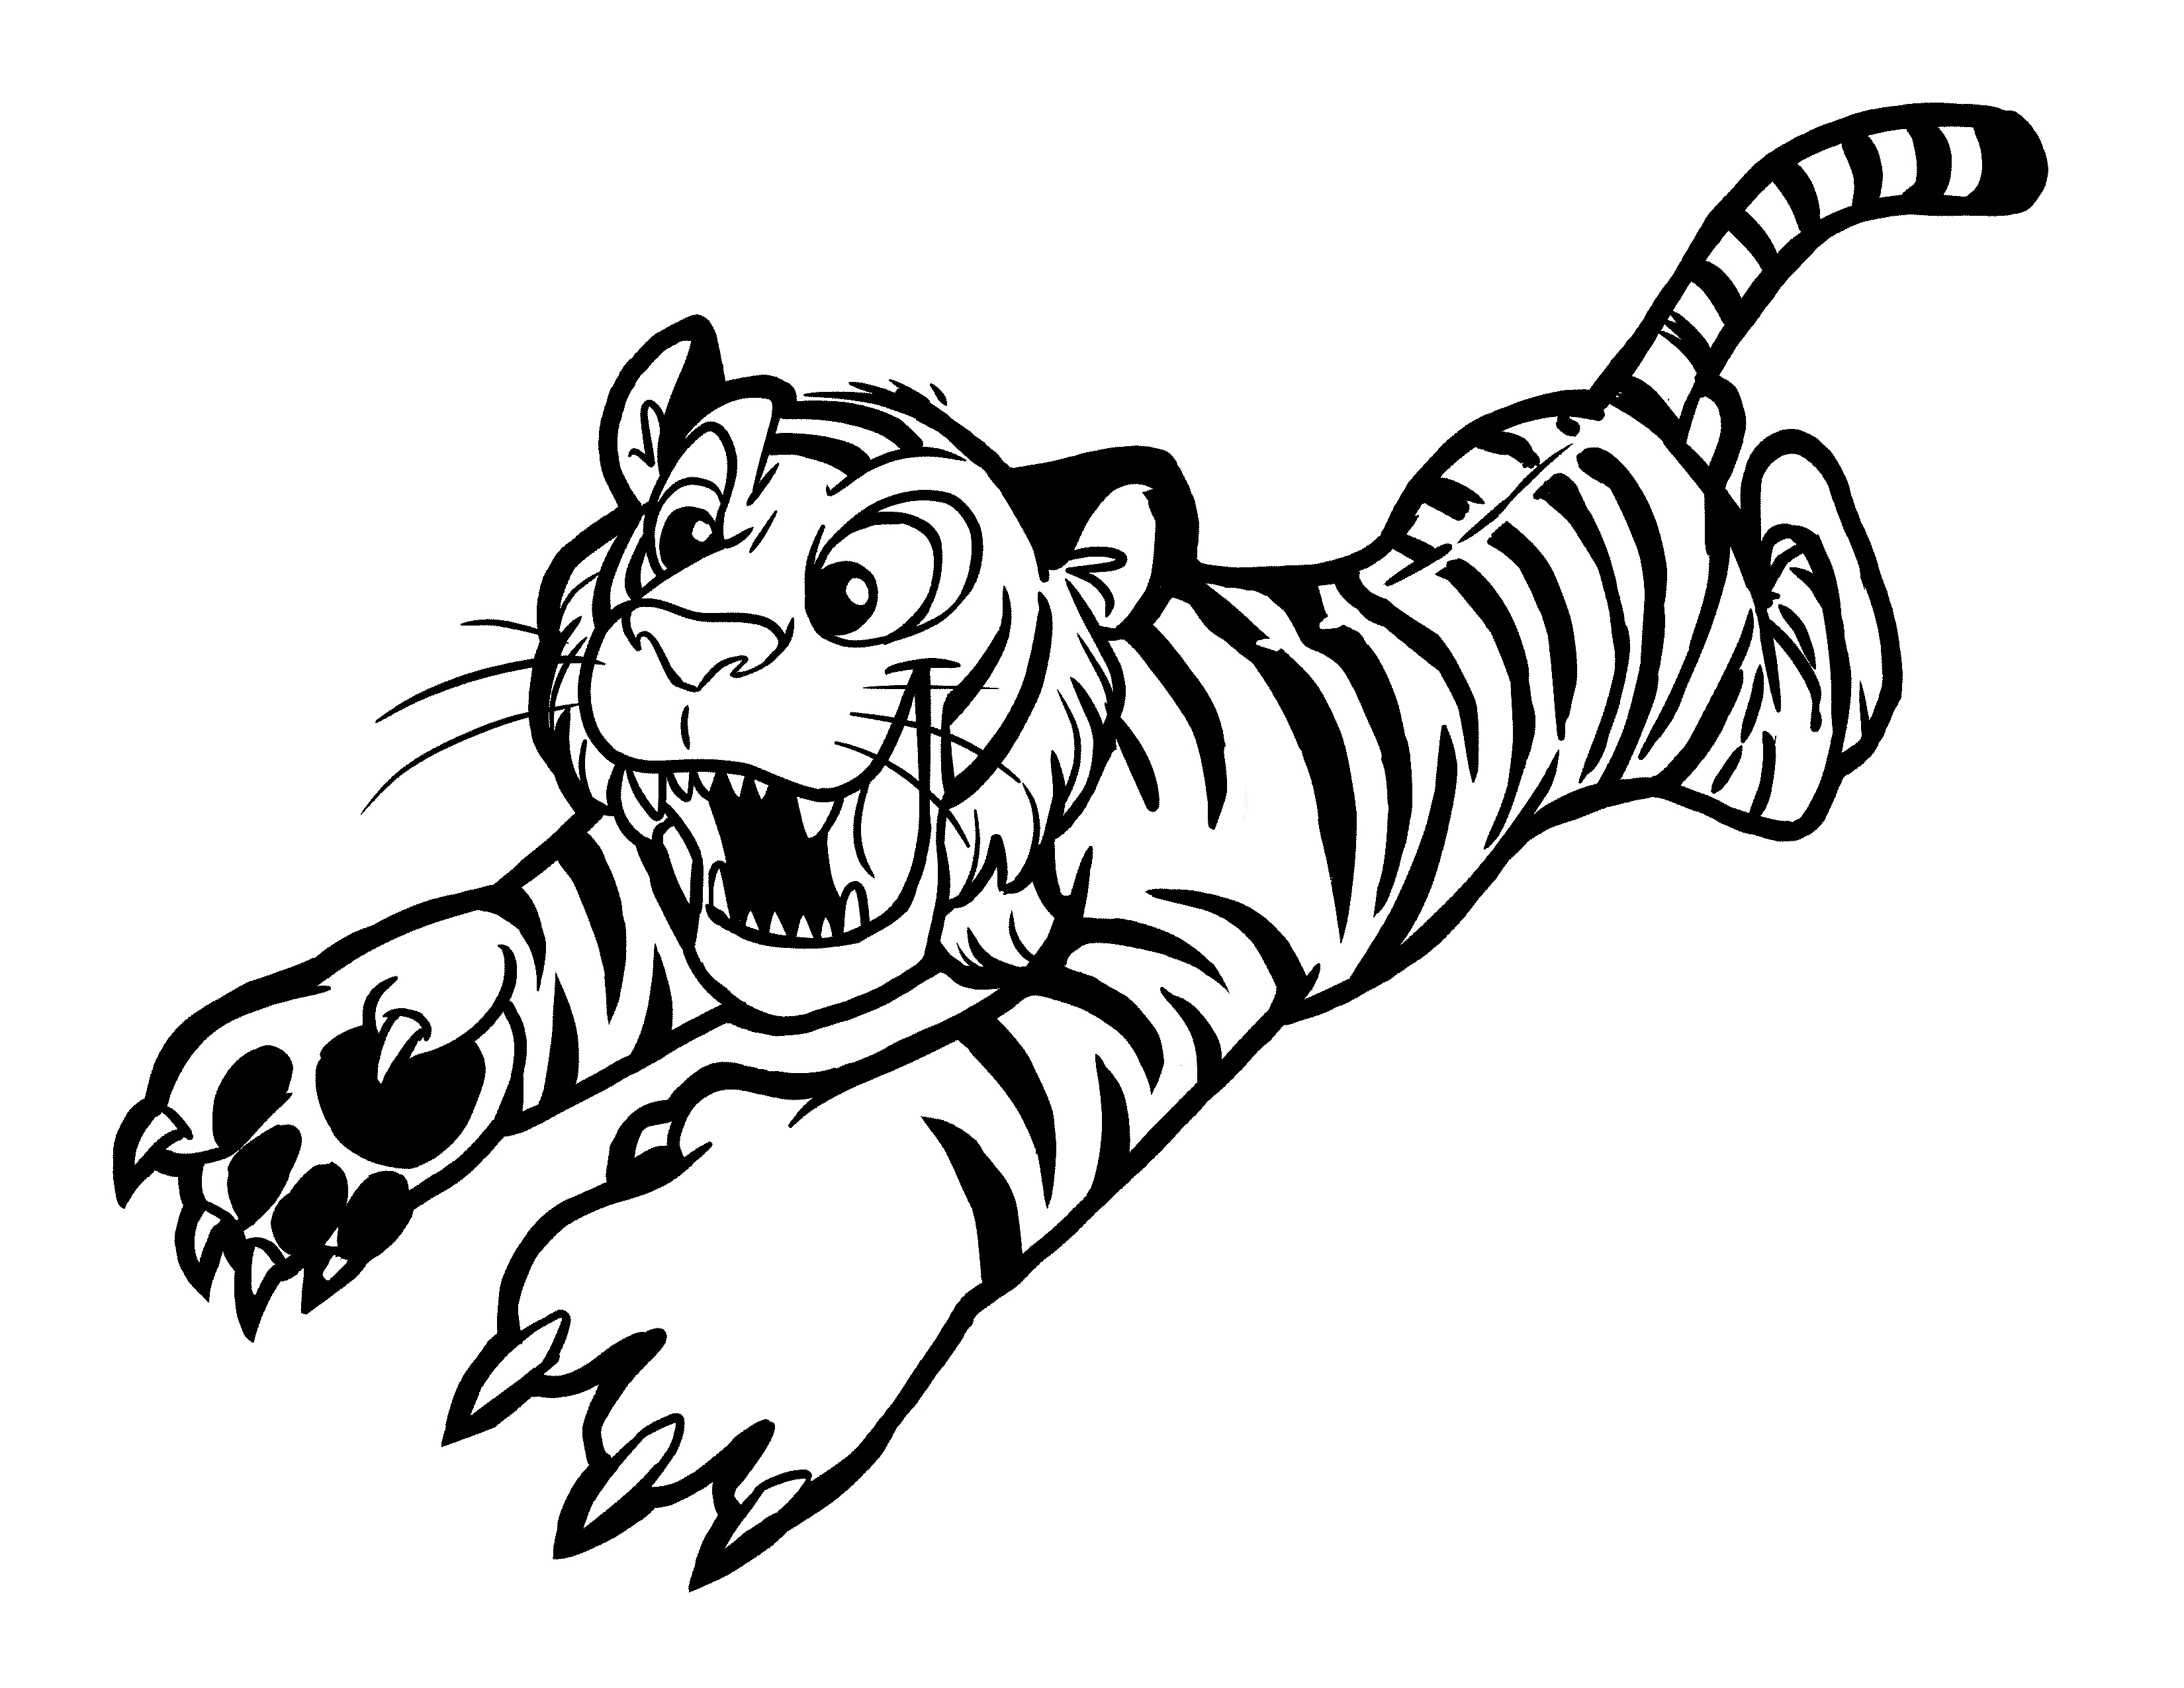 coloring picture of tiger tigers to print for free tigers kids coloring pages of coloring picture tiger